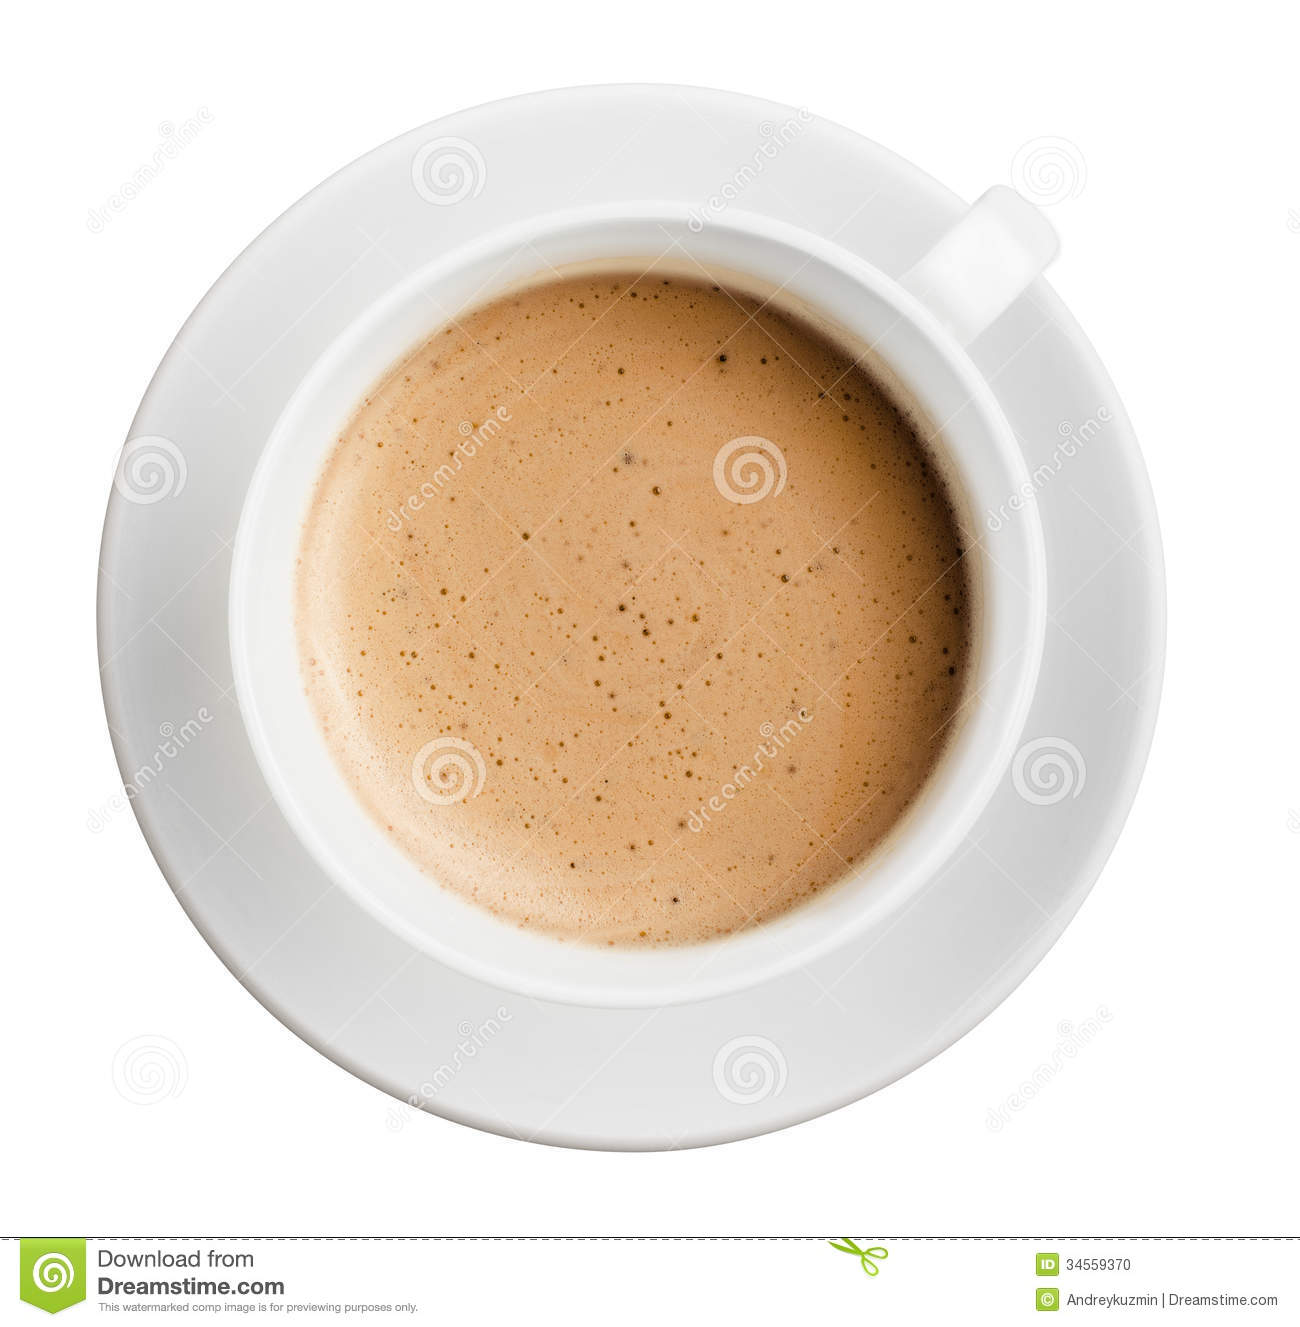 Cup Of Coffee With Foam Isolated, All In Focus, Top View Stock Photo ...